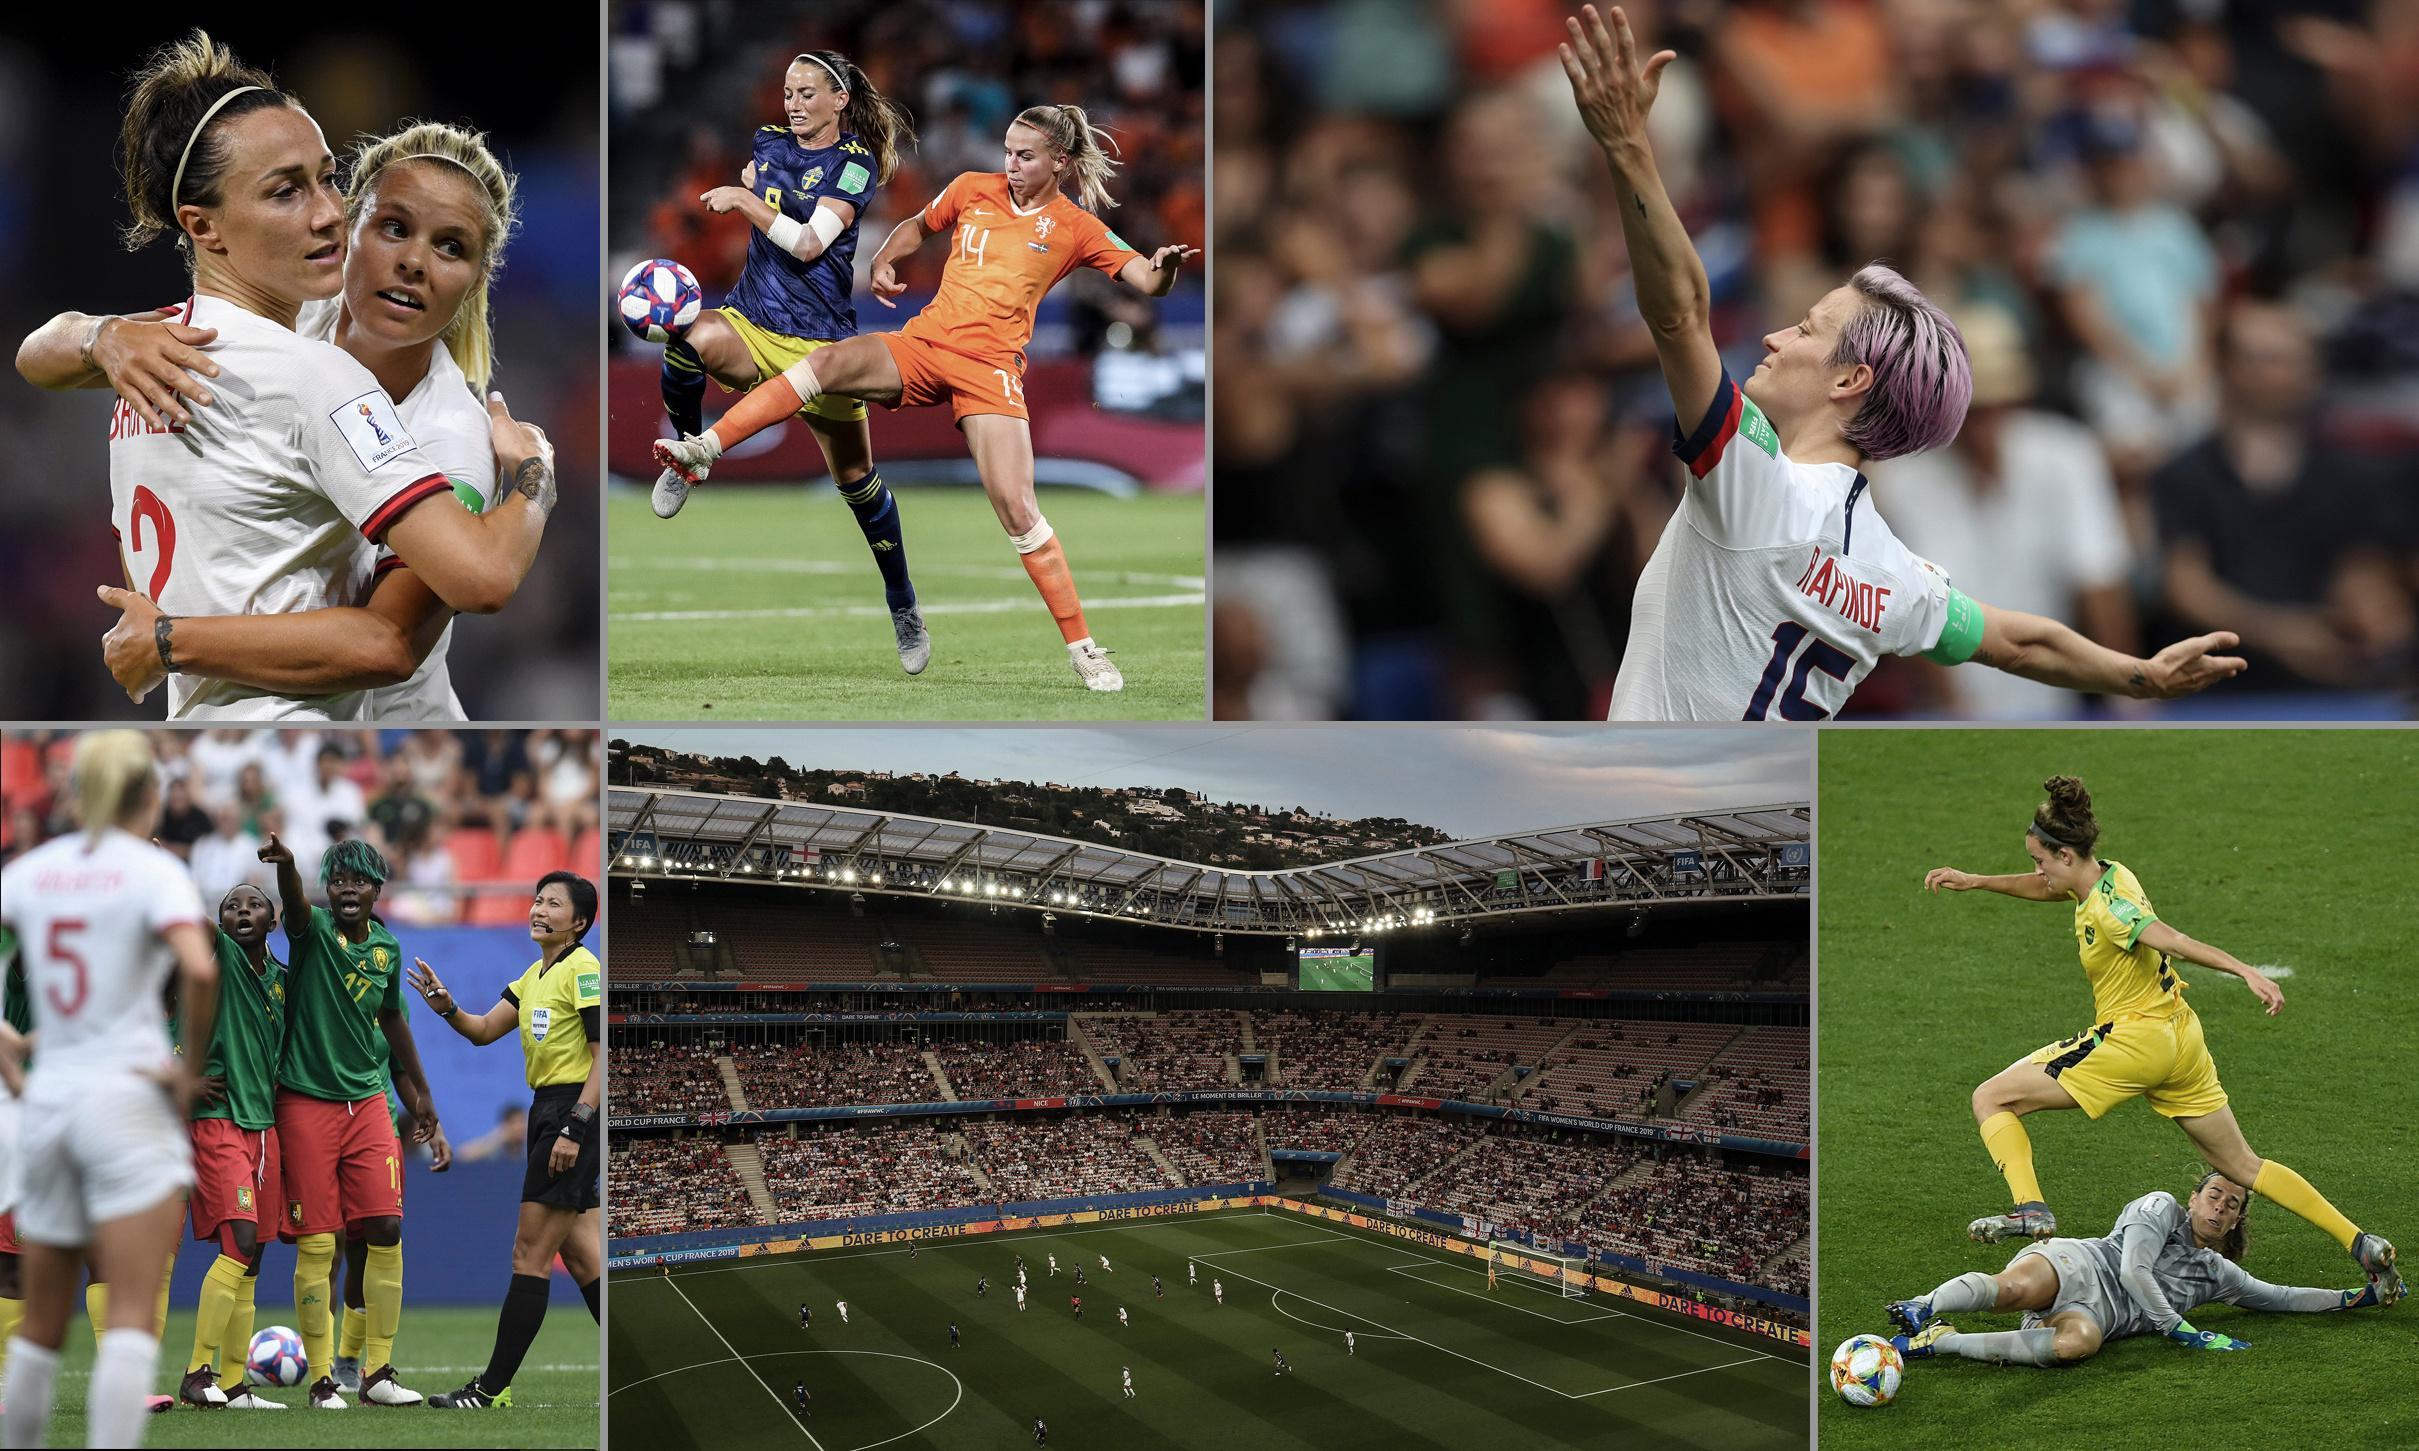 Women's World Cup 2019: Guardian writers pick their highs and lows